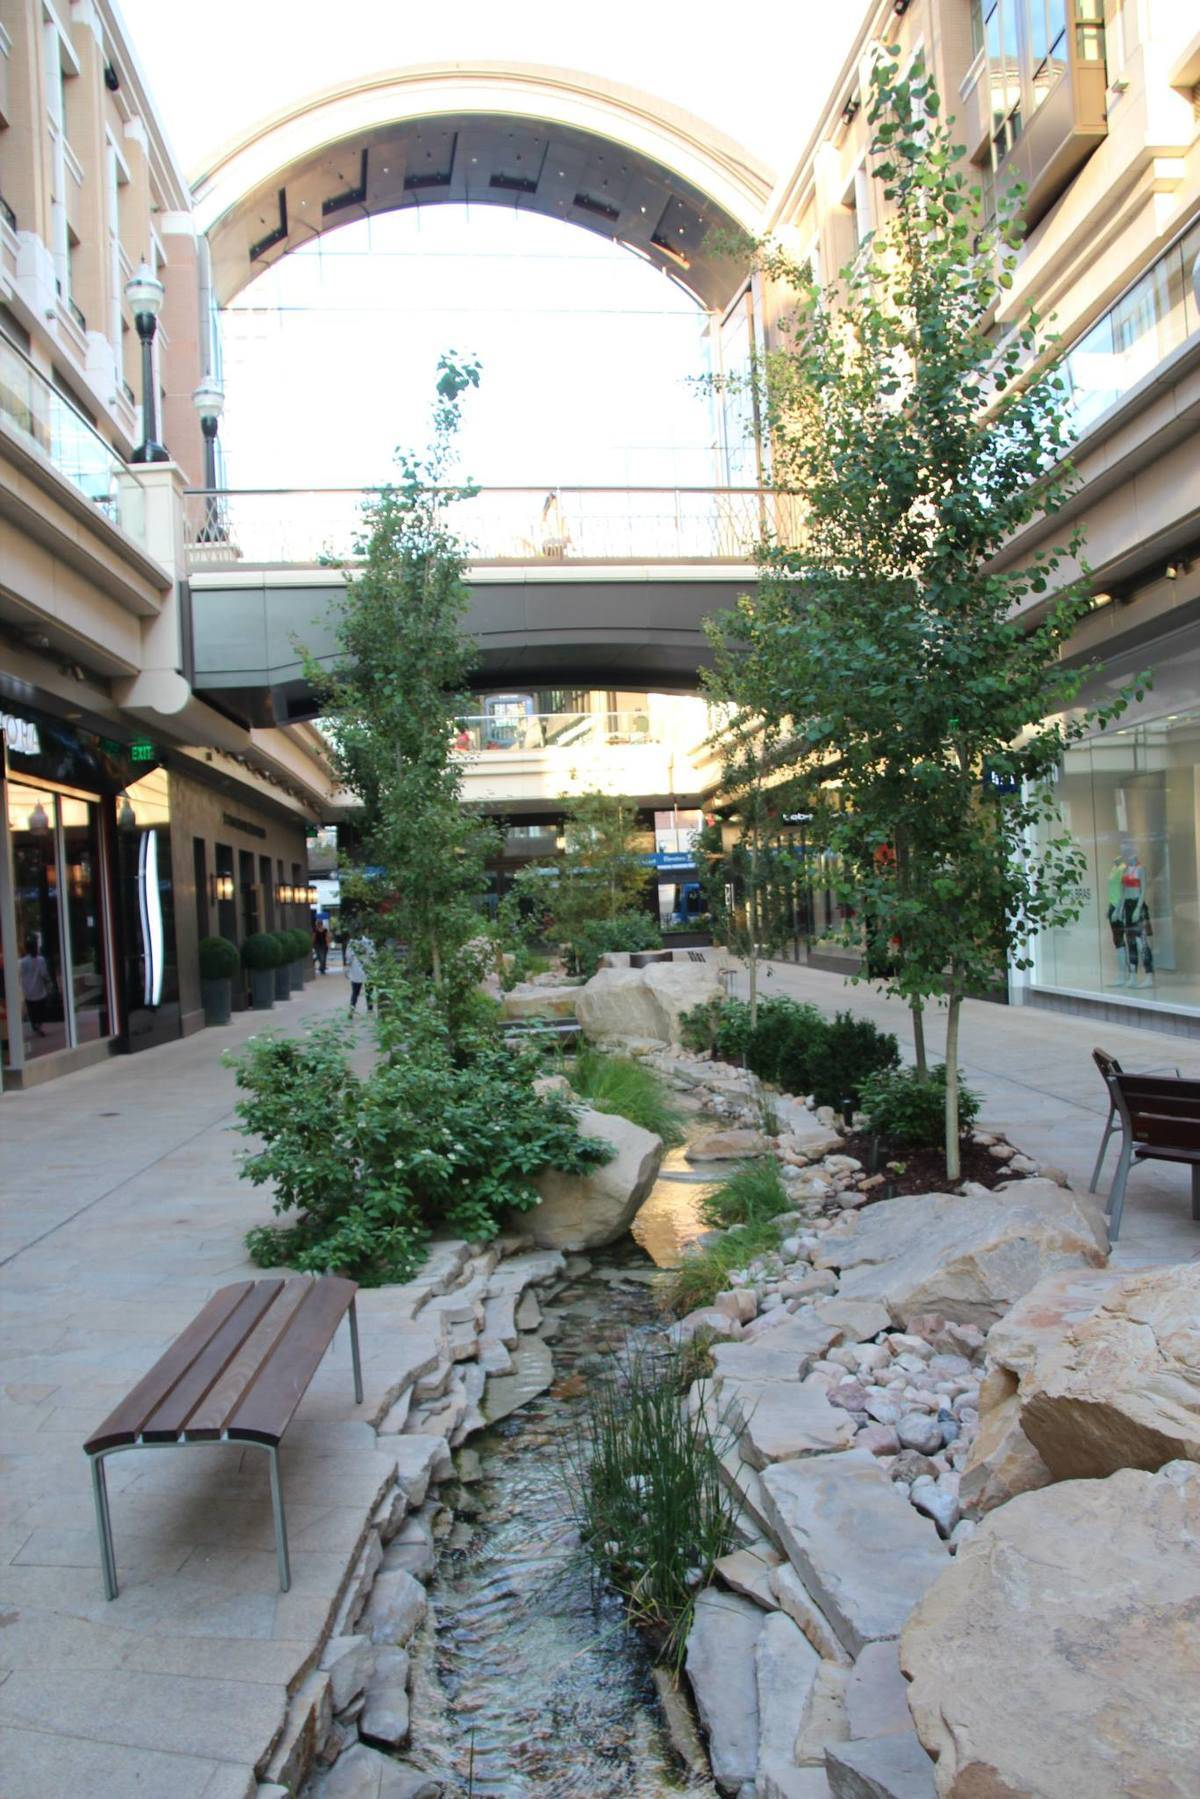 mountain stream crosses through center of outdoor shopping mall